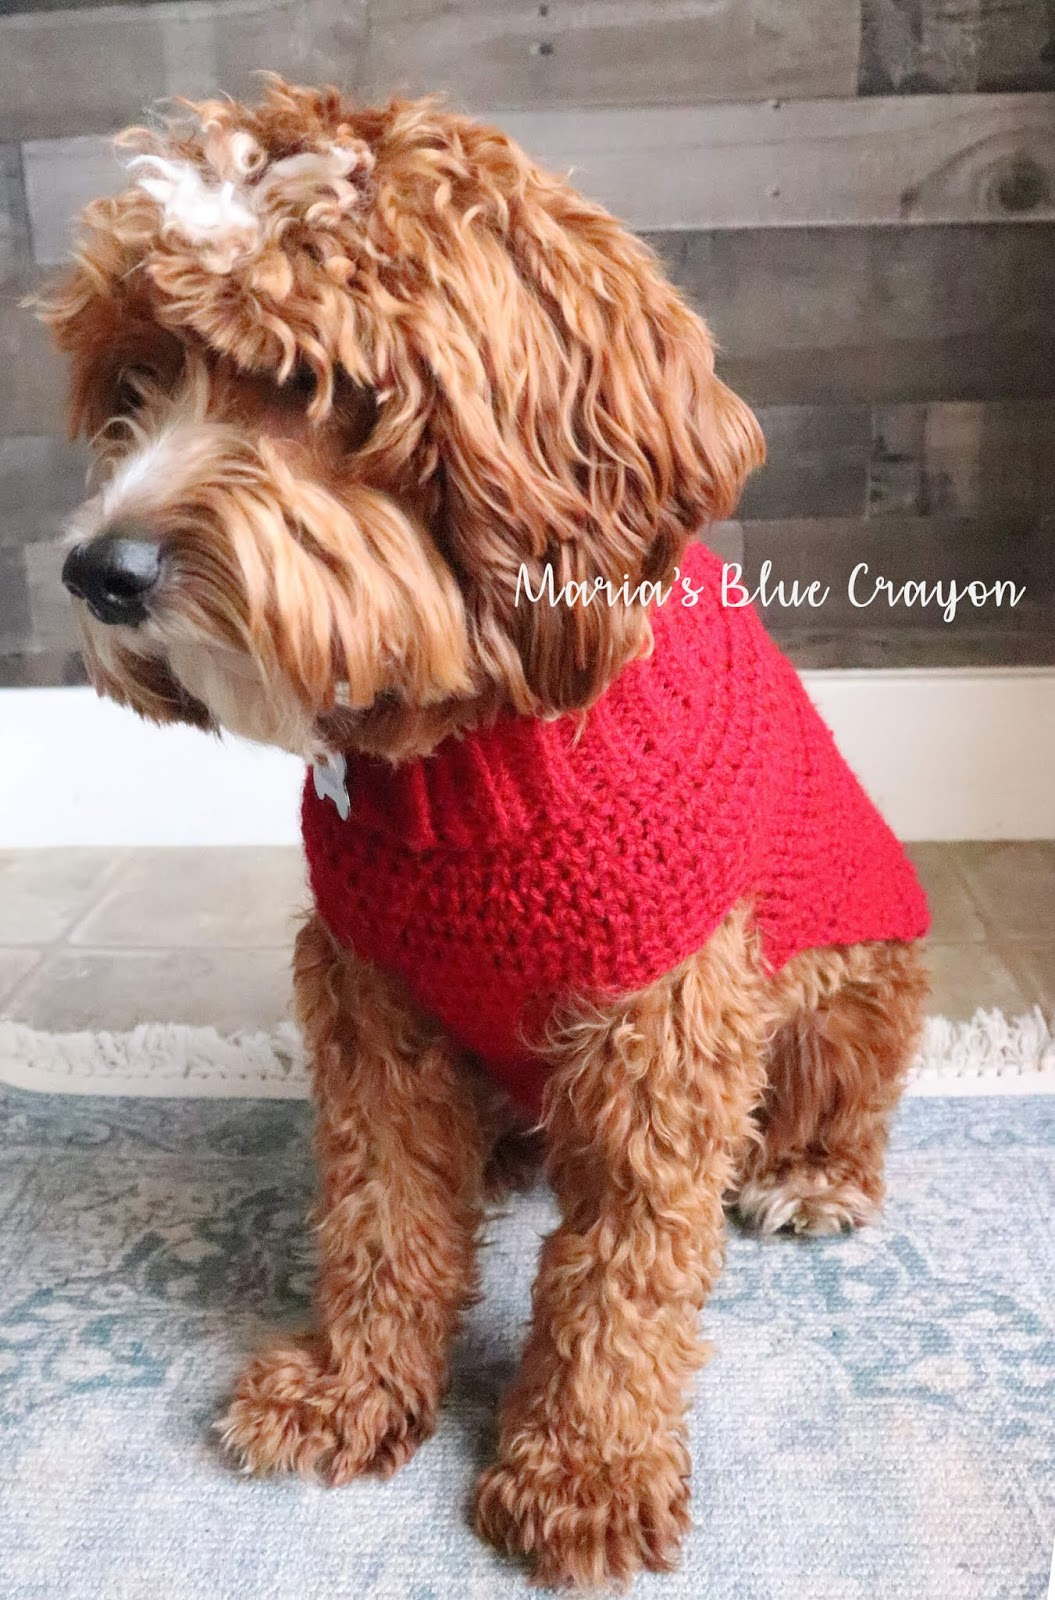 Crochet Dog Sweater Free Step By Step Tutorial Maria S Blue Crayon